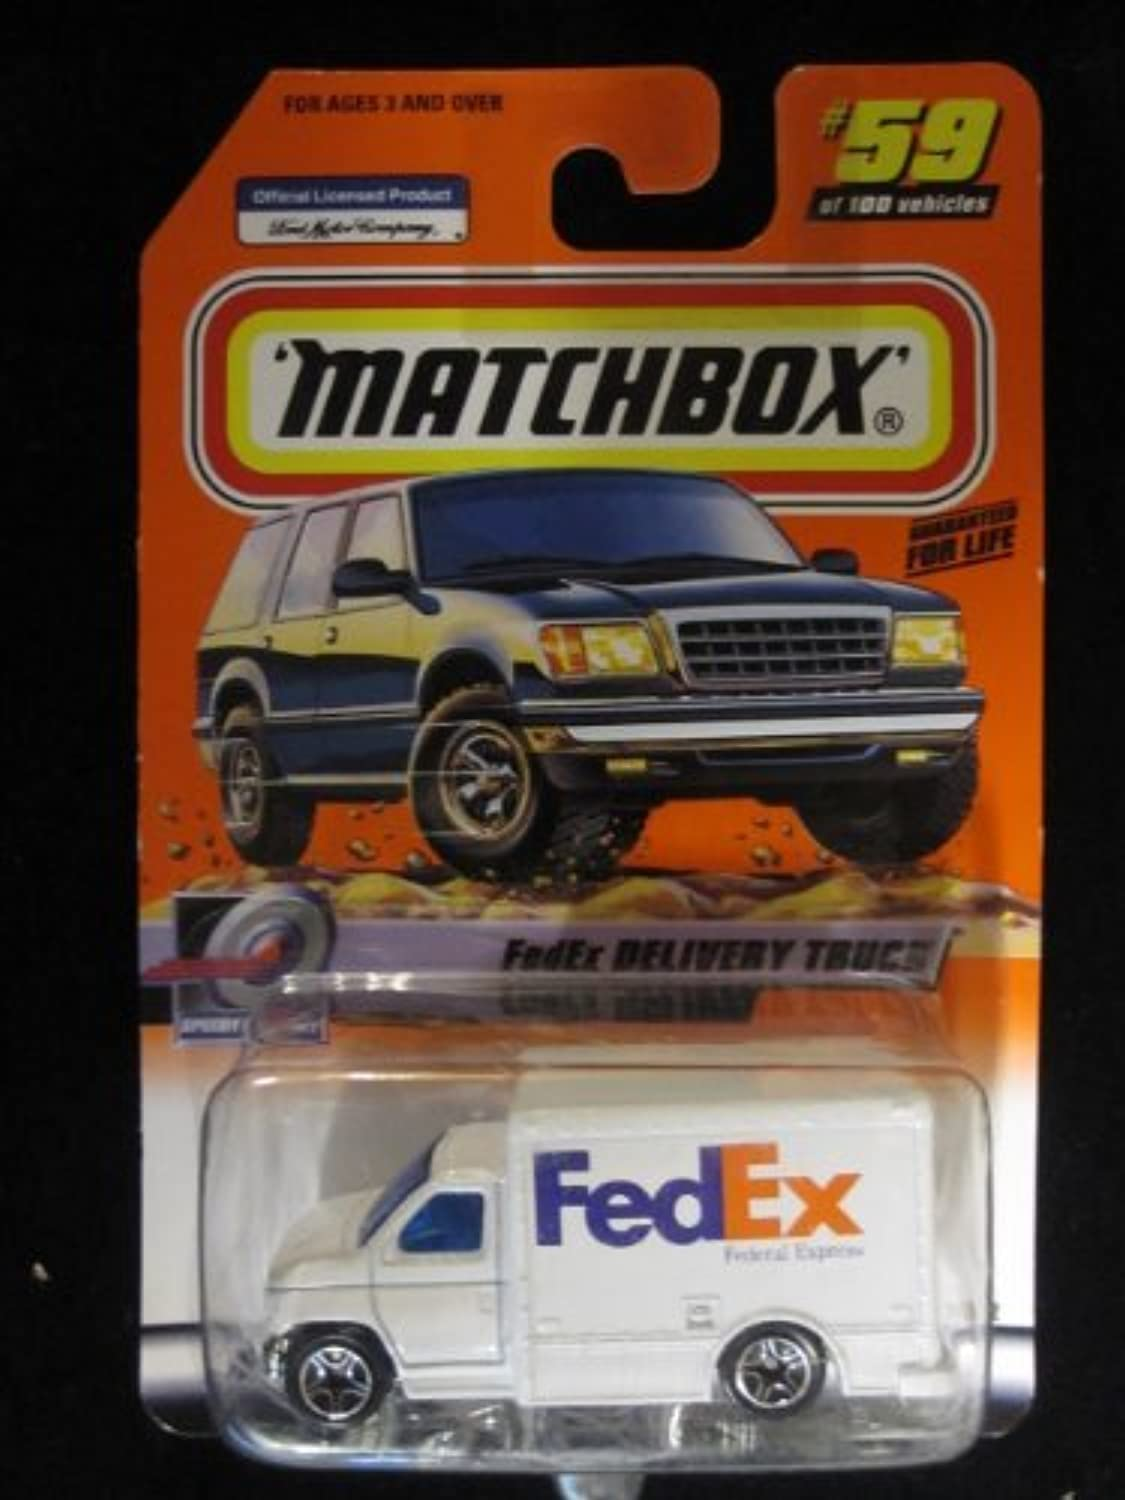 FedEx Delivery Truck Matchbox Speedy Delivery Series  59 by Matchbox